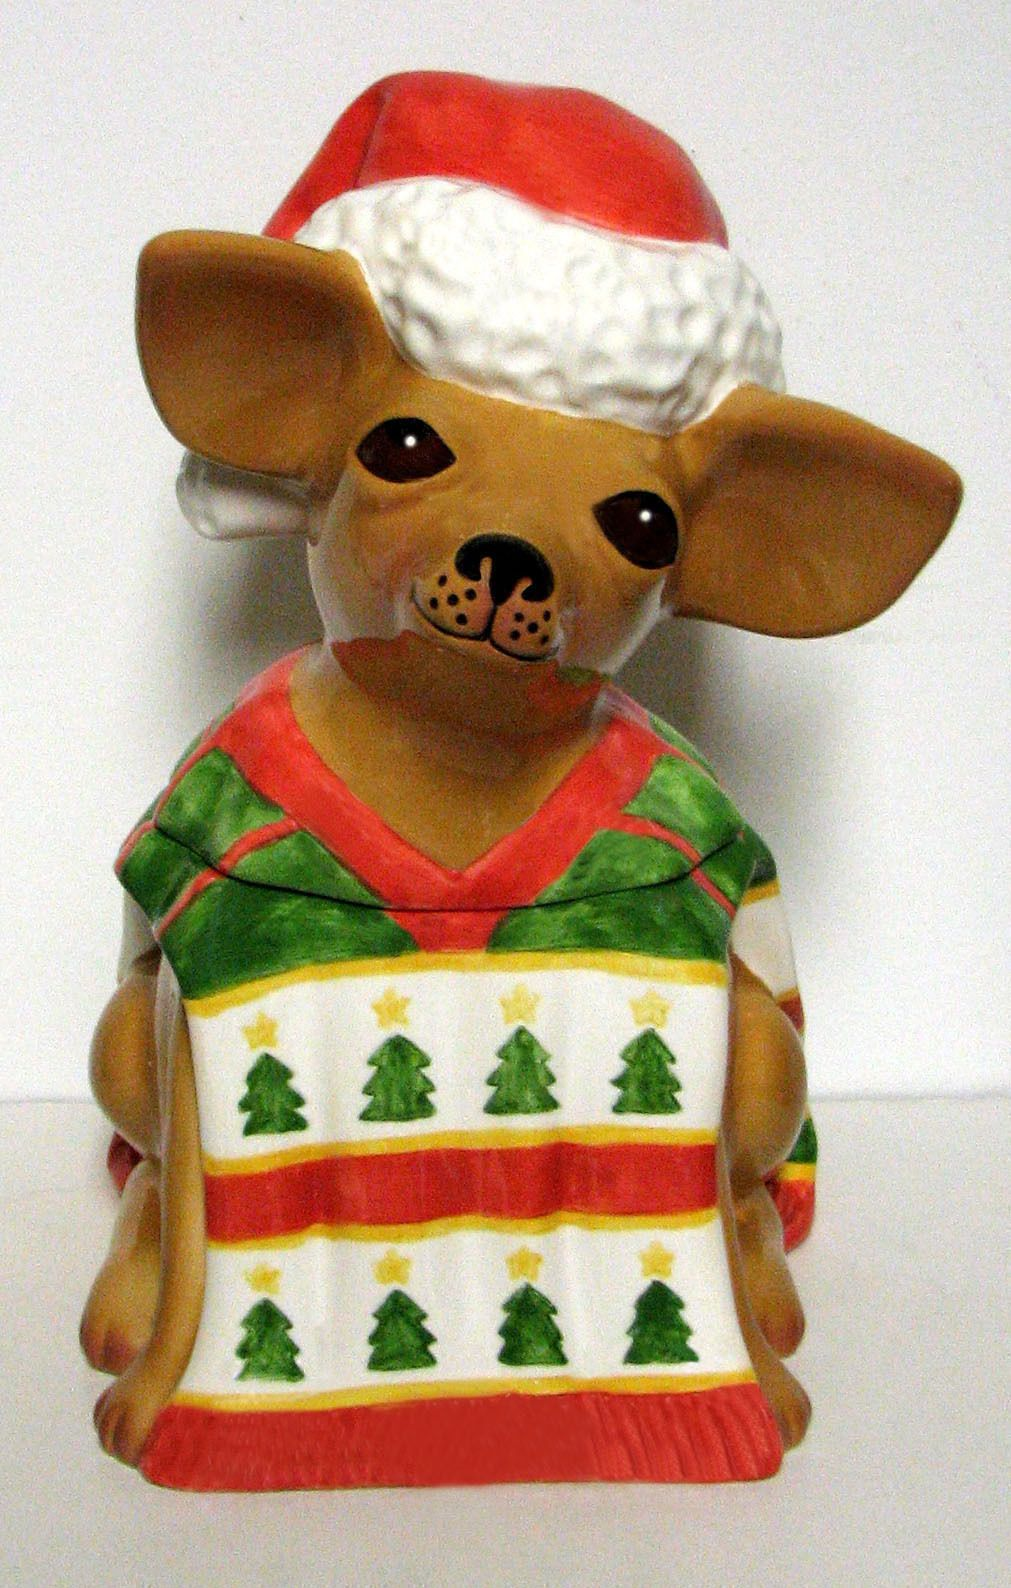 Chihuahua Cookie Jar Interesting Rare Santa Chihuahua Clay Art Cookie Jar  Cookie Jars Jar And Santa Inspiration Design